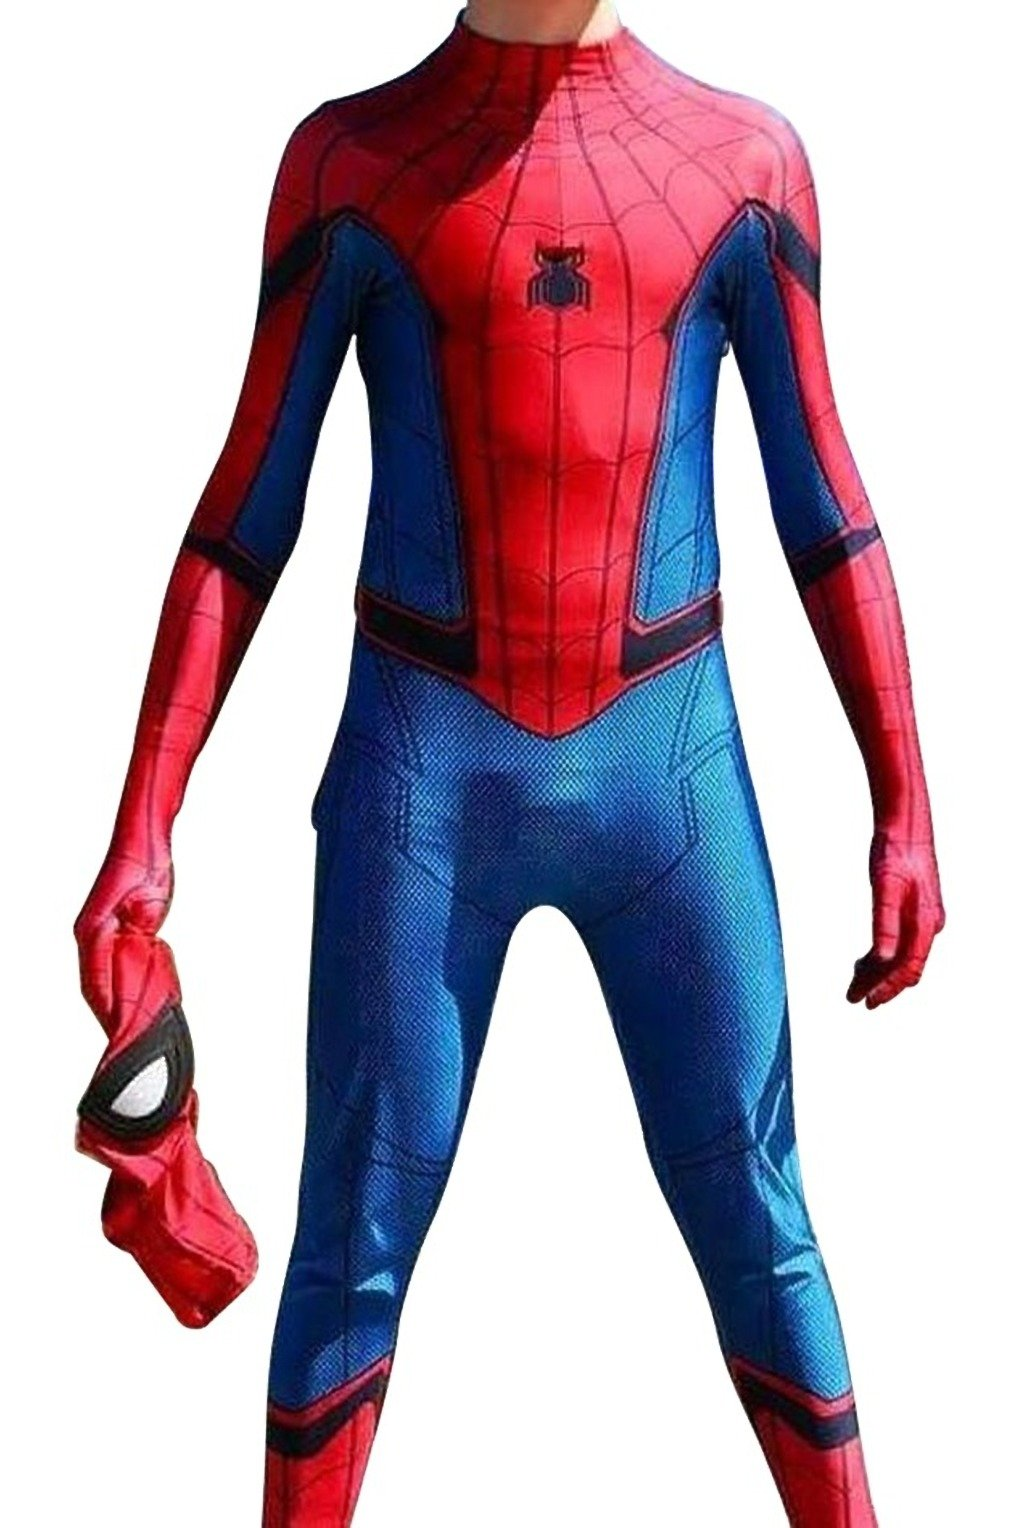 Spider-Man Homecoming Cosplay Costume by Aesthetic Cosplay Homecoming Spider-Man S